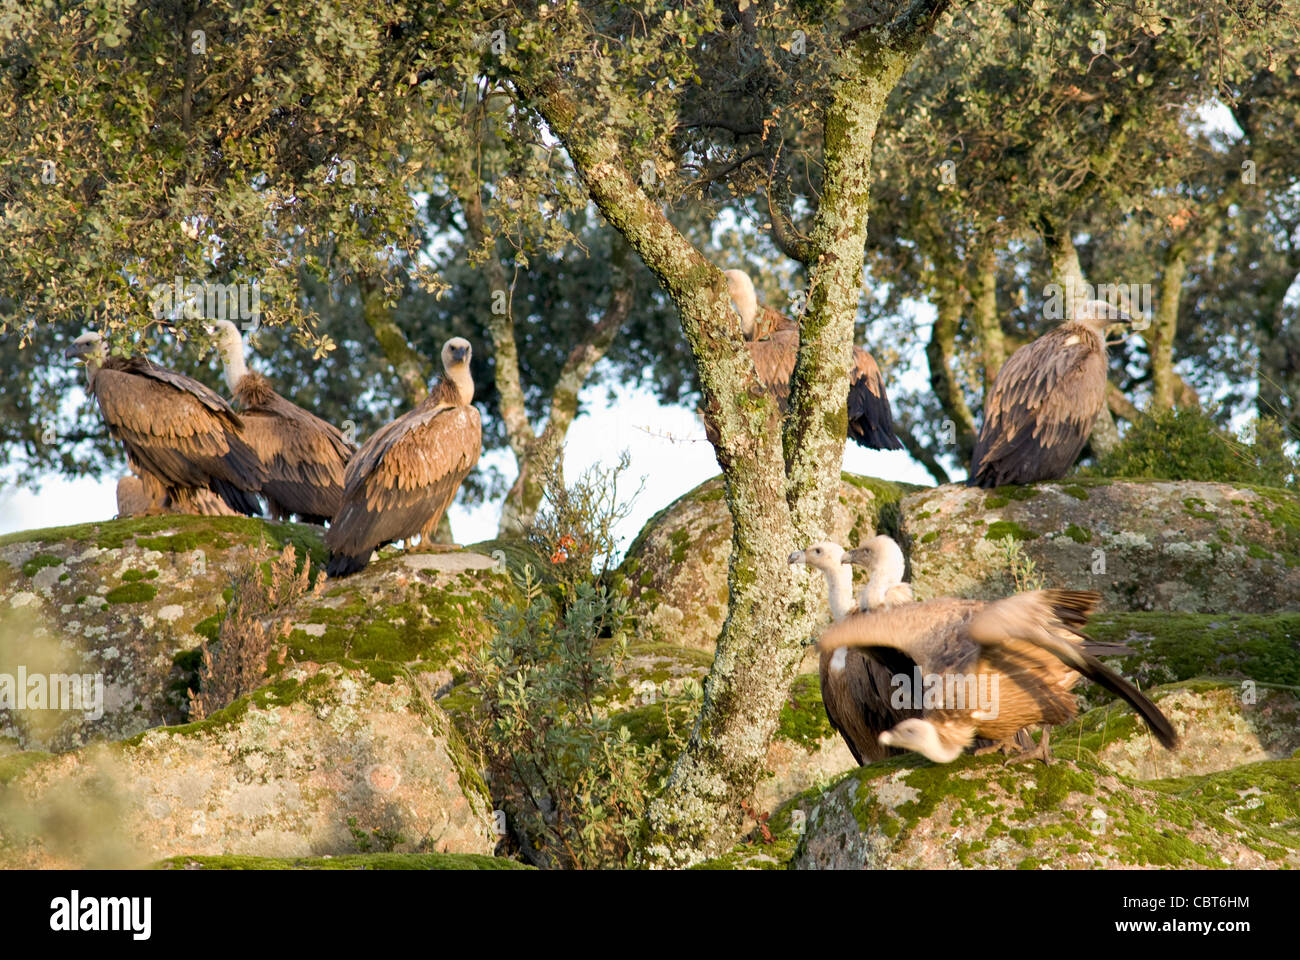 Griffon Vultures resting on moss covered granite boulders with  holm oak trees growing in the gaps - Stock Image